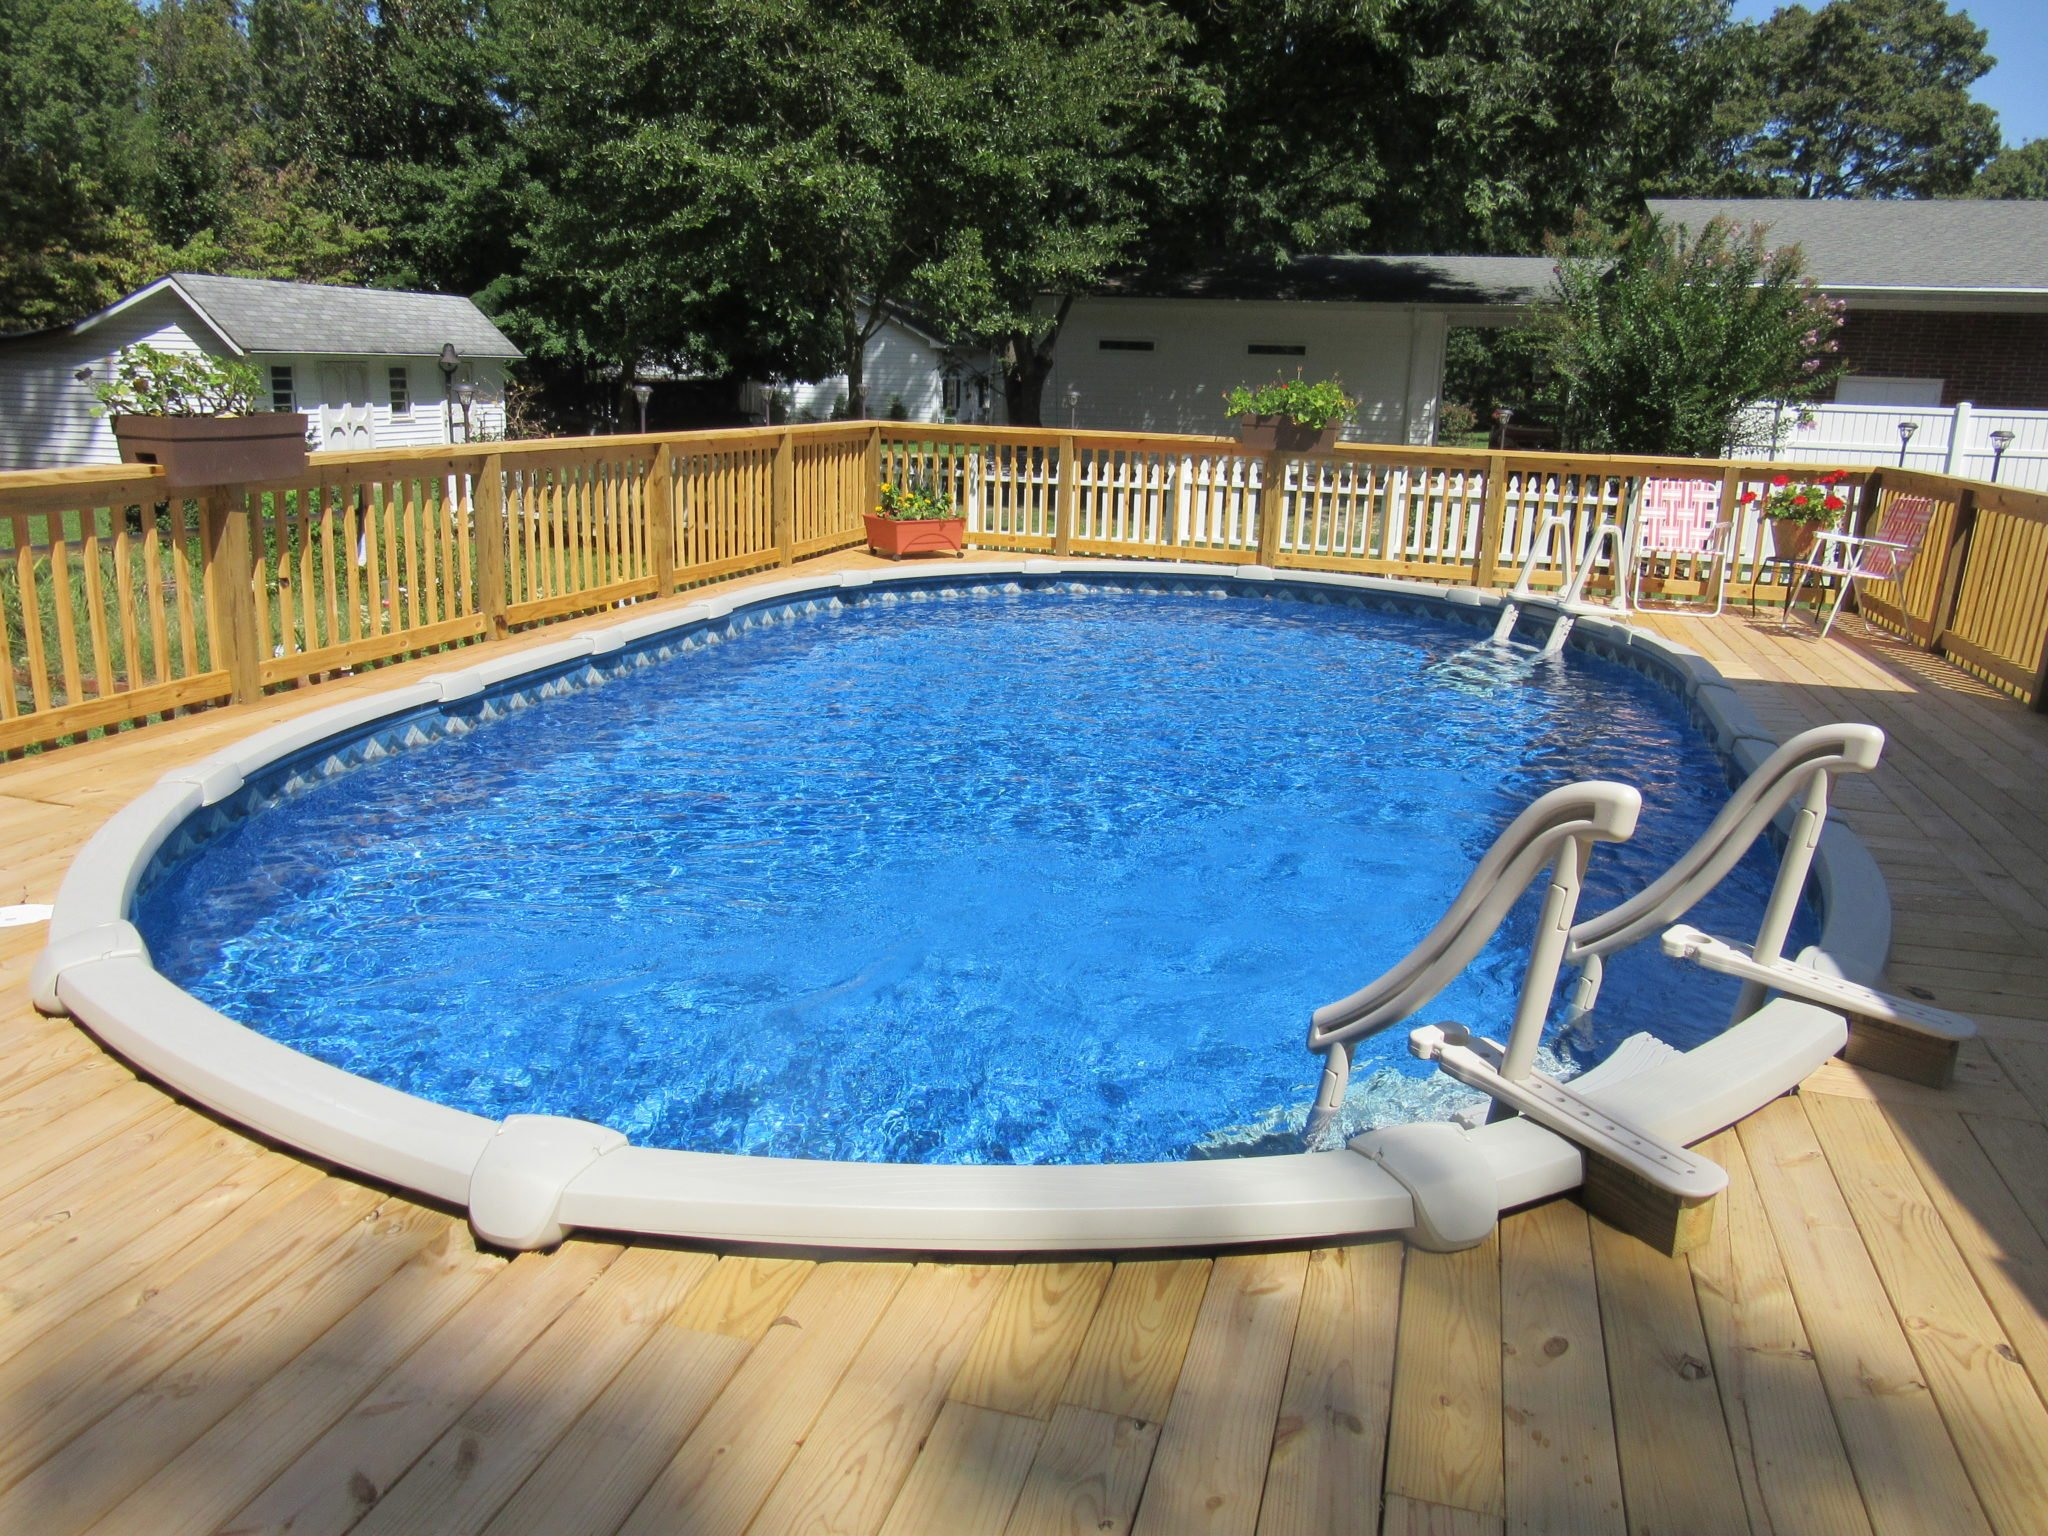 Jacuzzi Oval Pool Rising Sun Pools And Spas Aboveground Pools Raleigh 39s